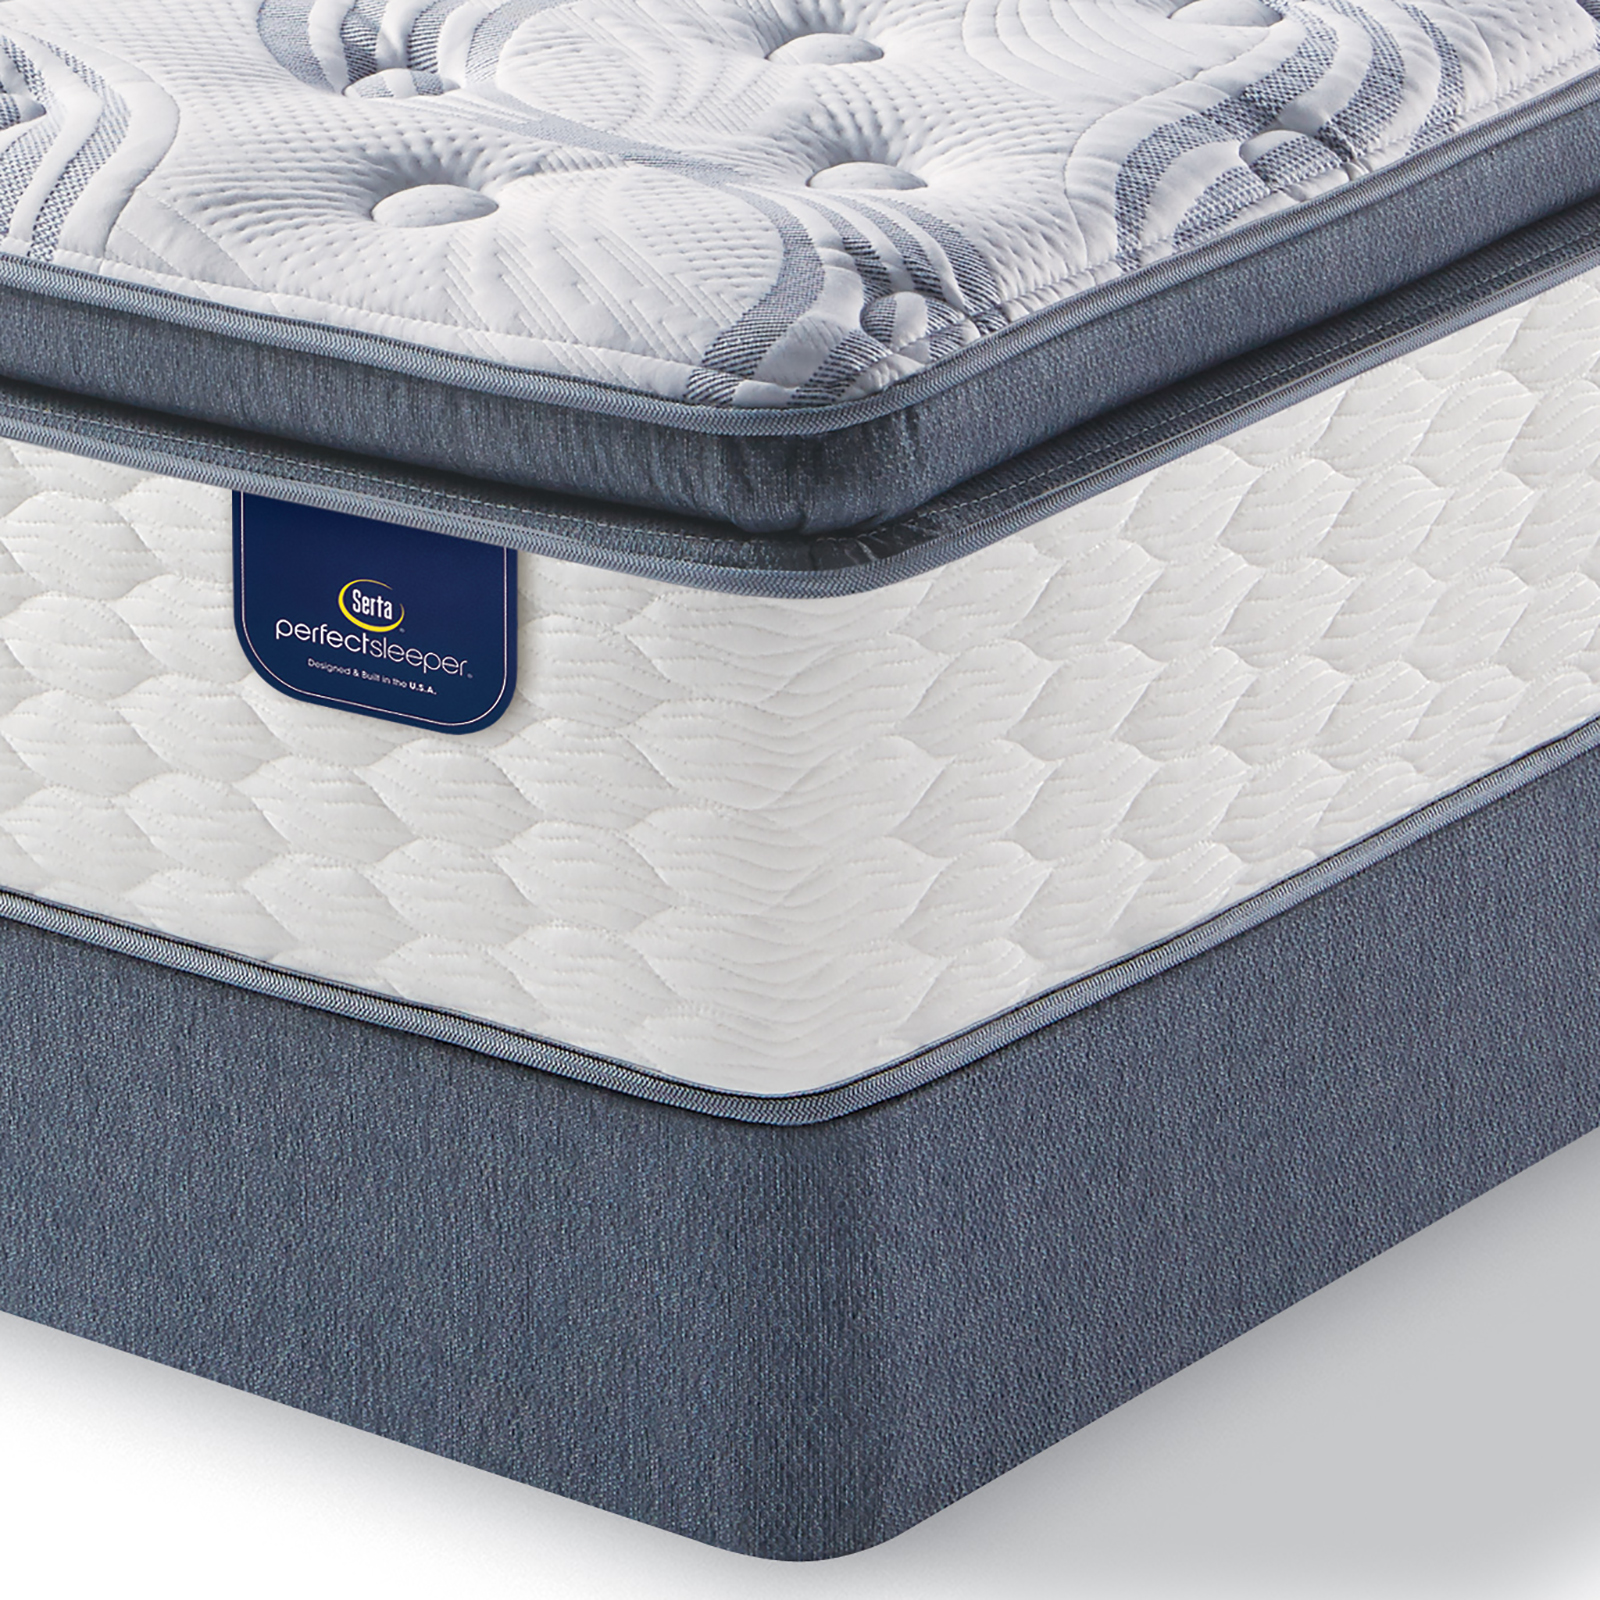 Serta Perfect Sleeper Teddington Firm Super Pillowtop Mattress